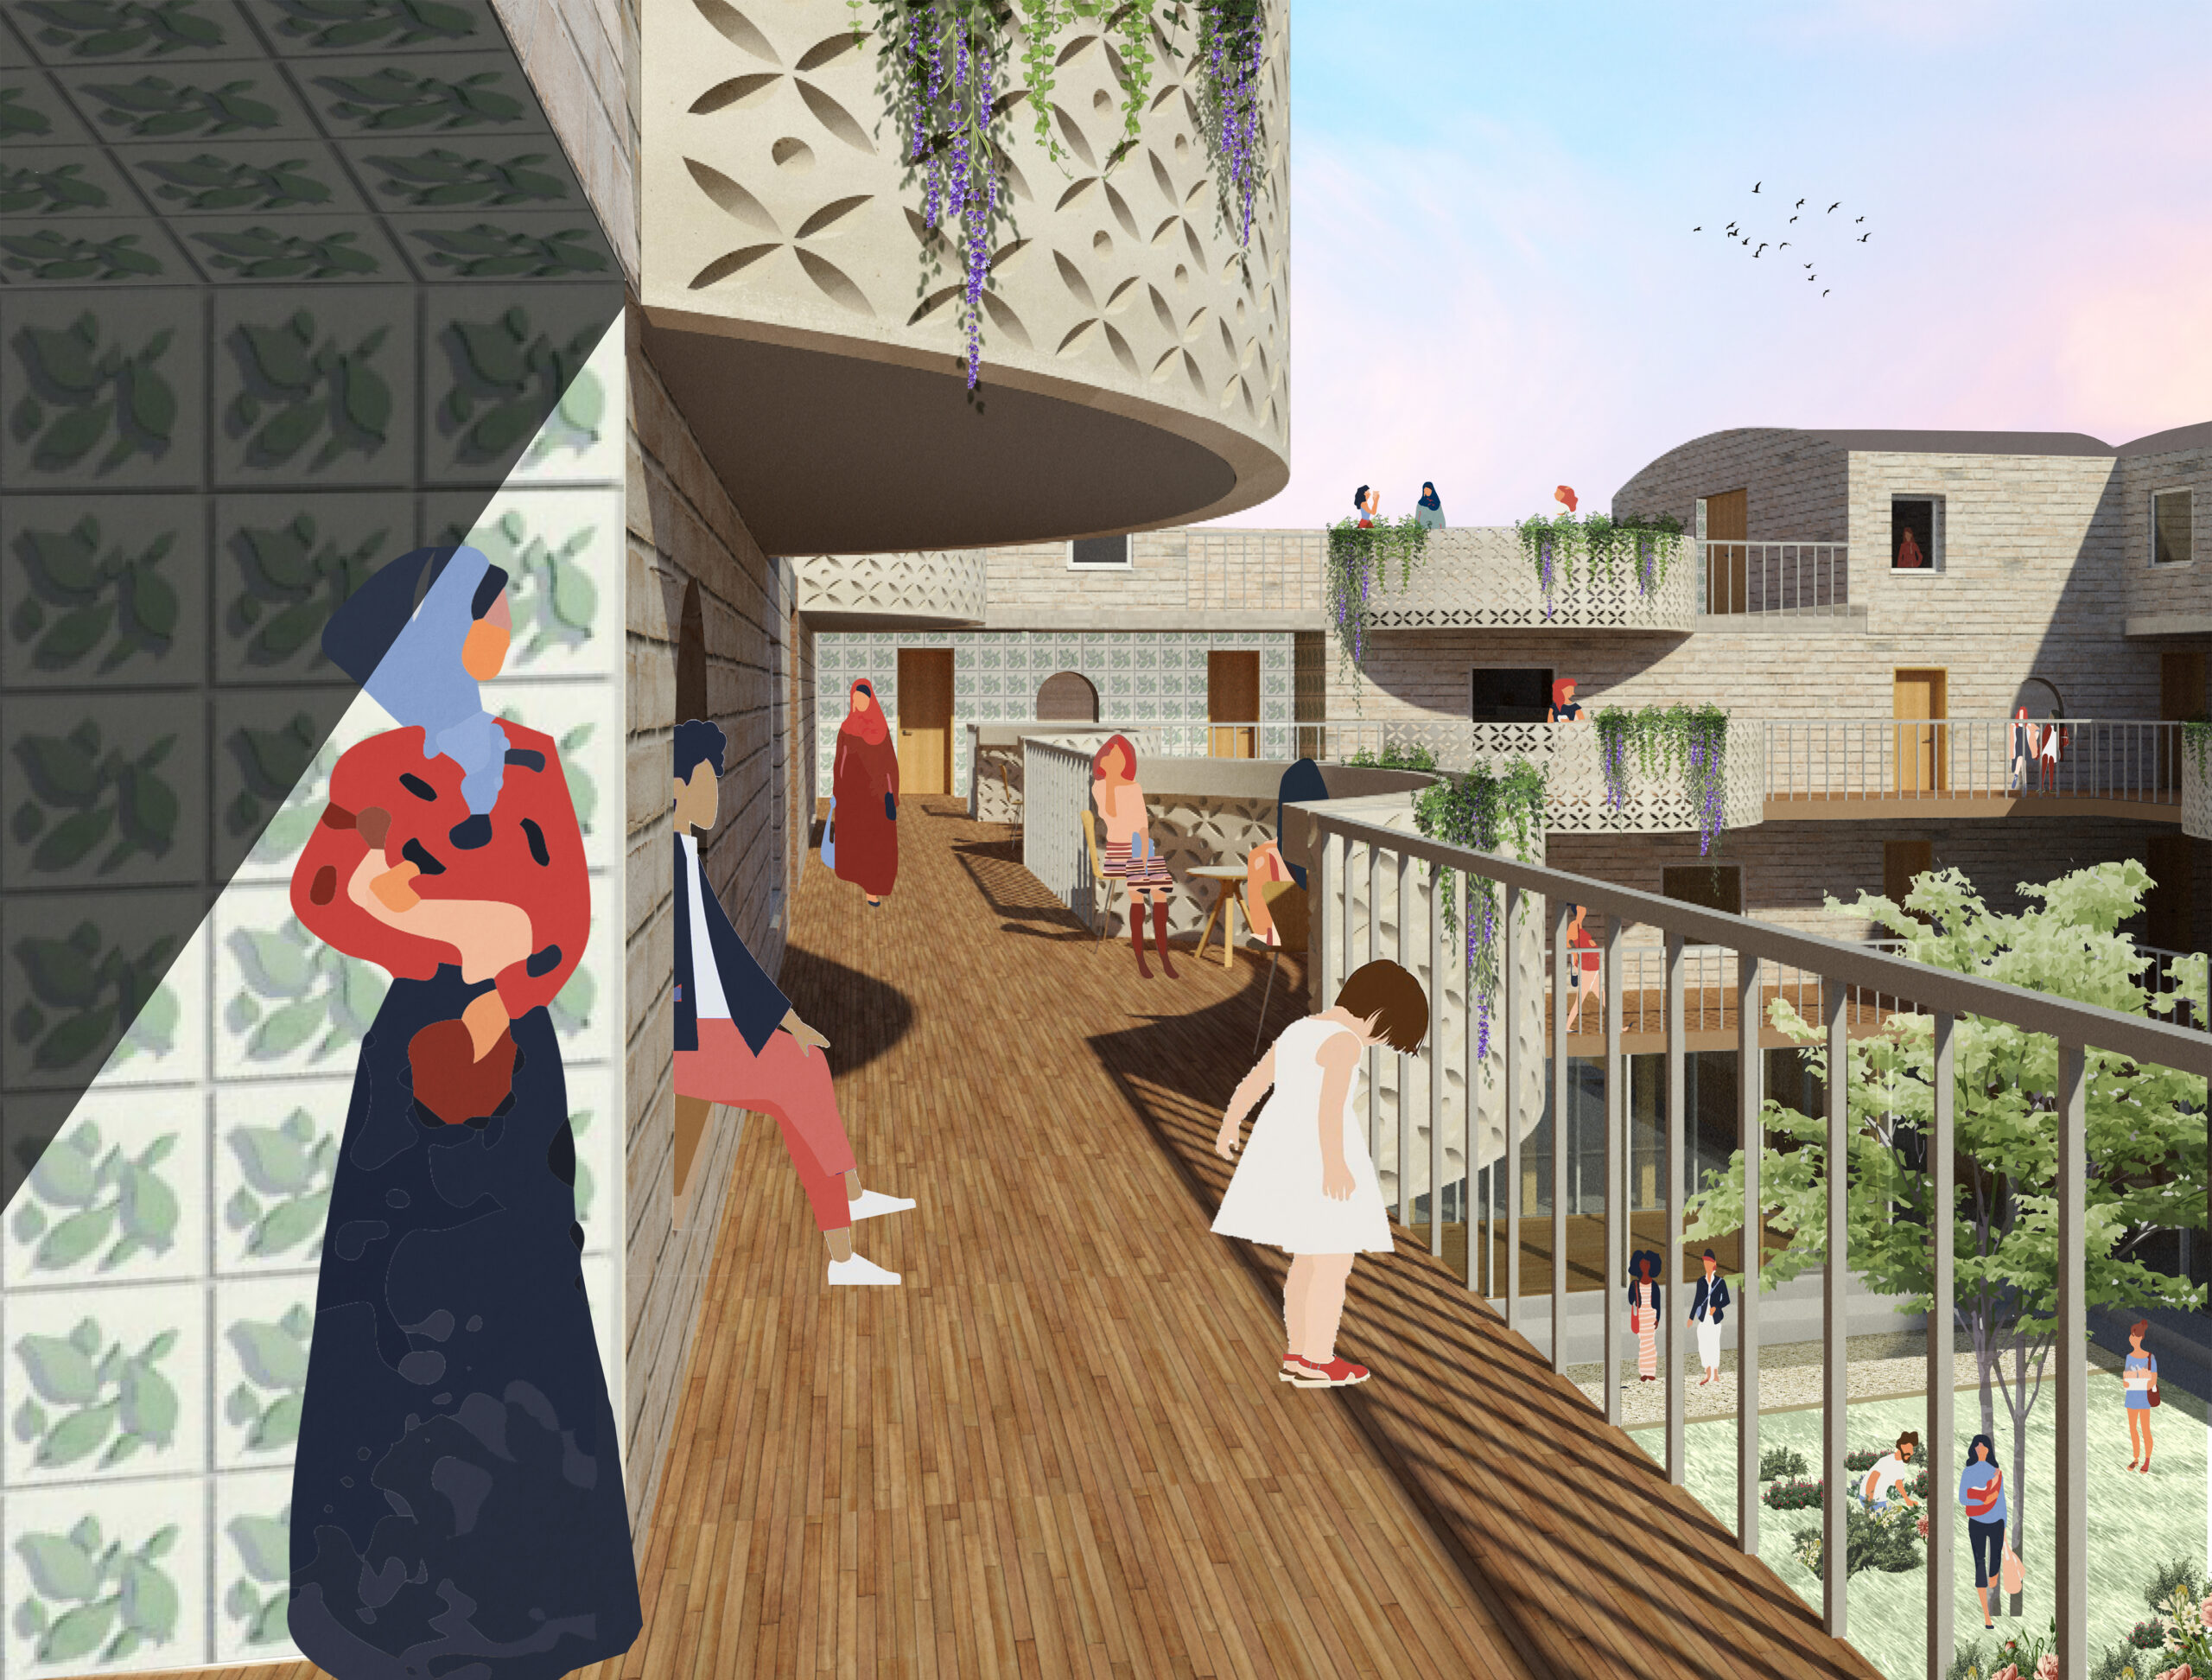 Threshold and balcony views overlooking the external courtyard. Curved balconies and integrated wall seats provide levels of interaction for women and children. These also allow for vulnerable women who feel anxious to enjoy communal activities from a distance.